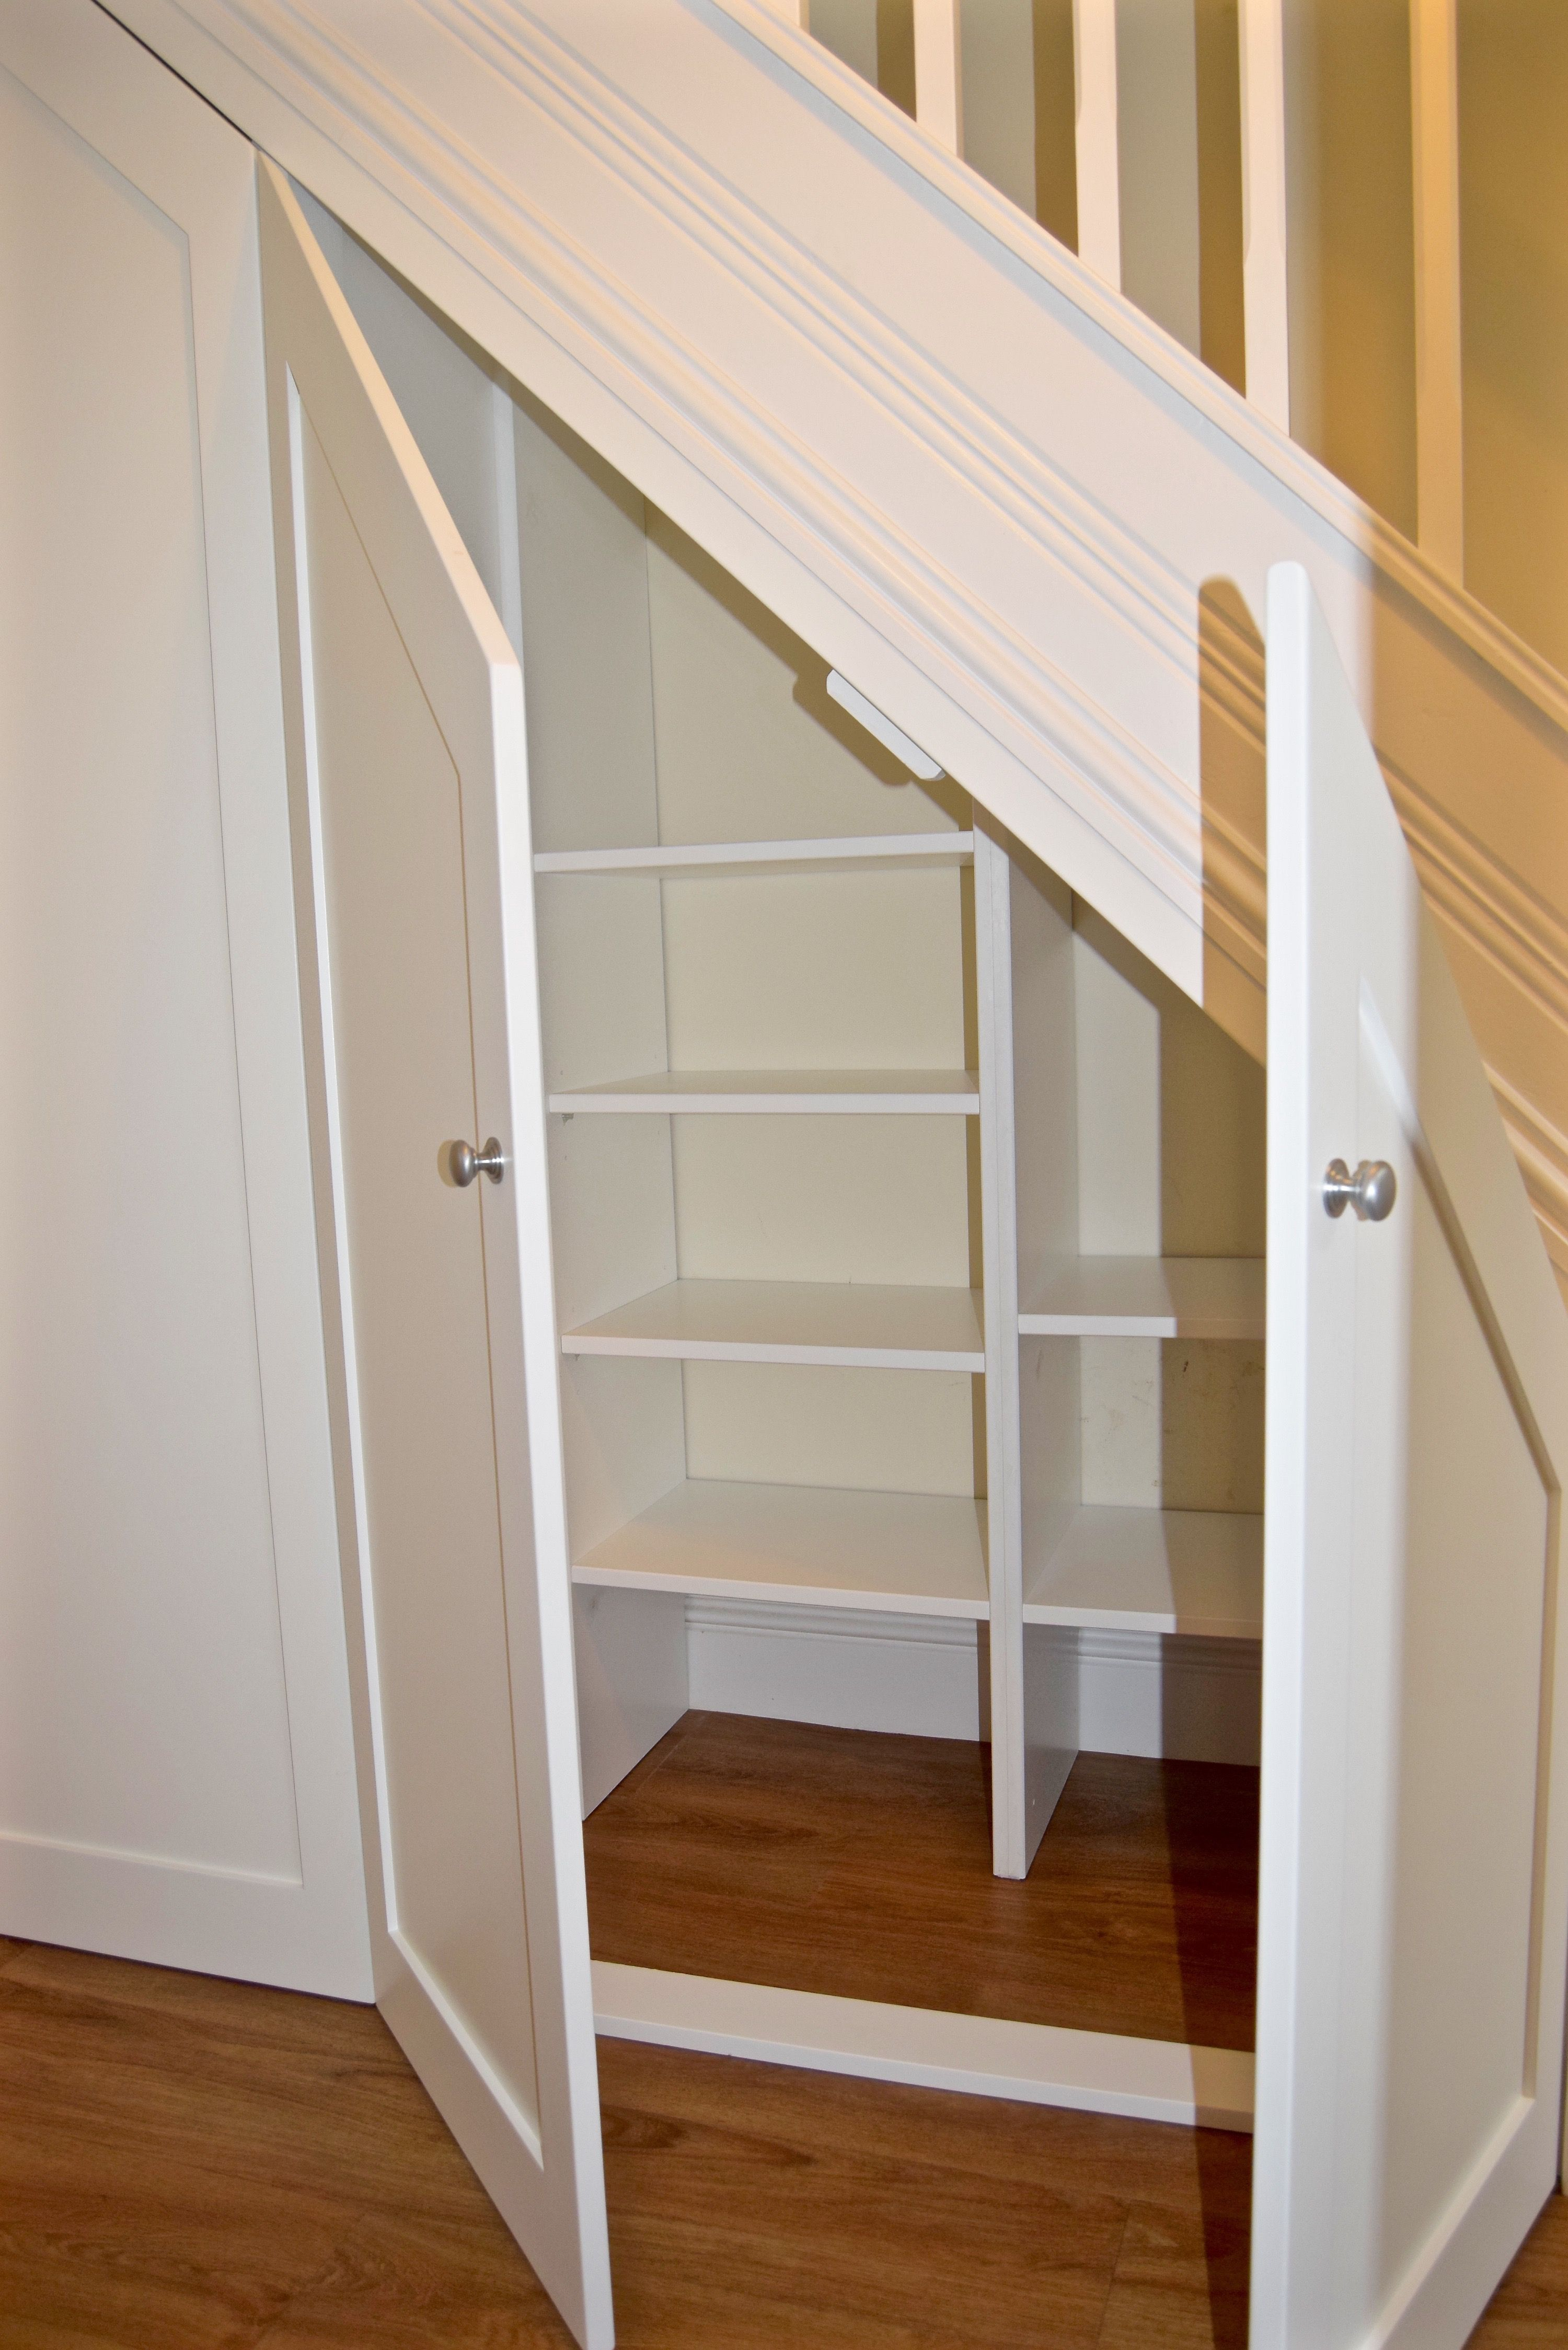 Under Stair Cabinets With Internal Storage By Cabinet Maker Gill